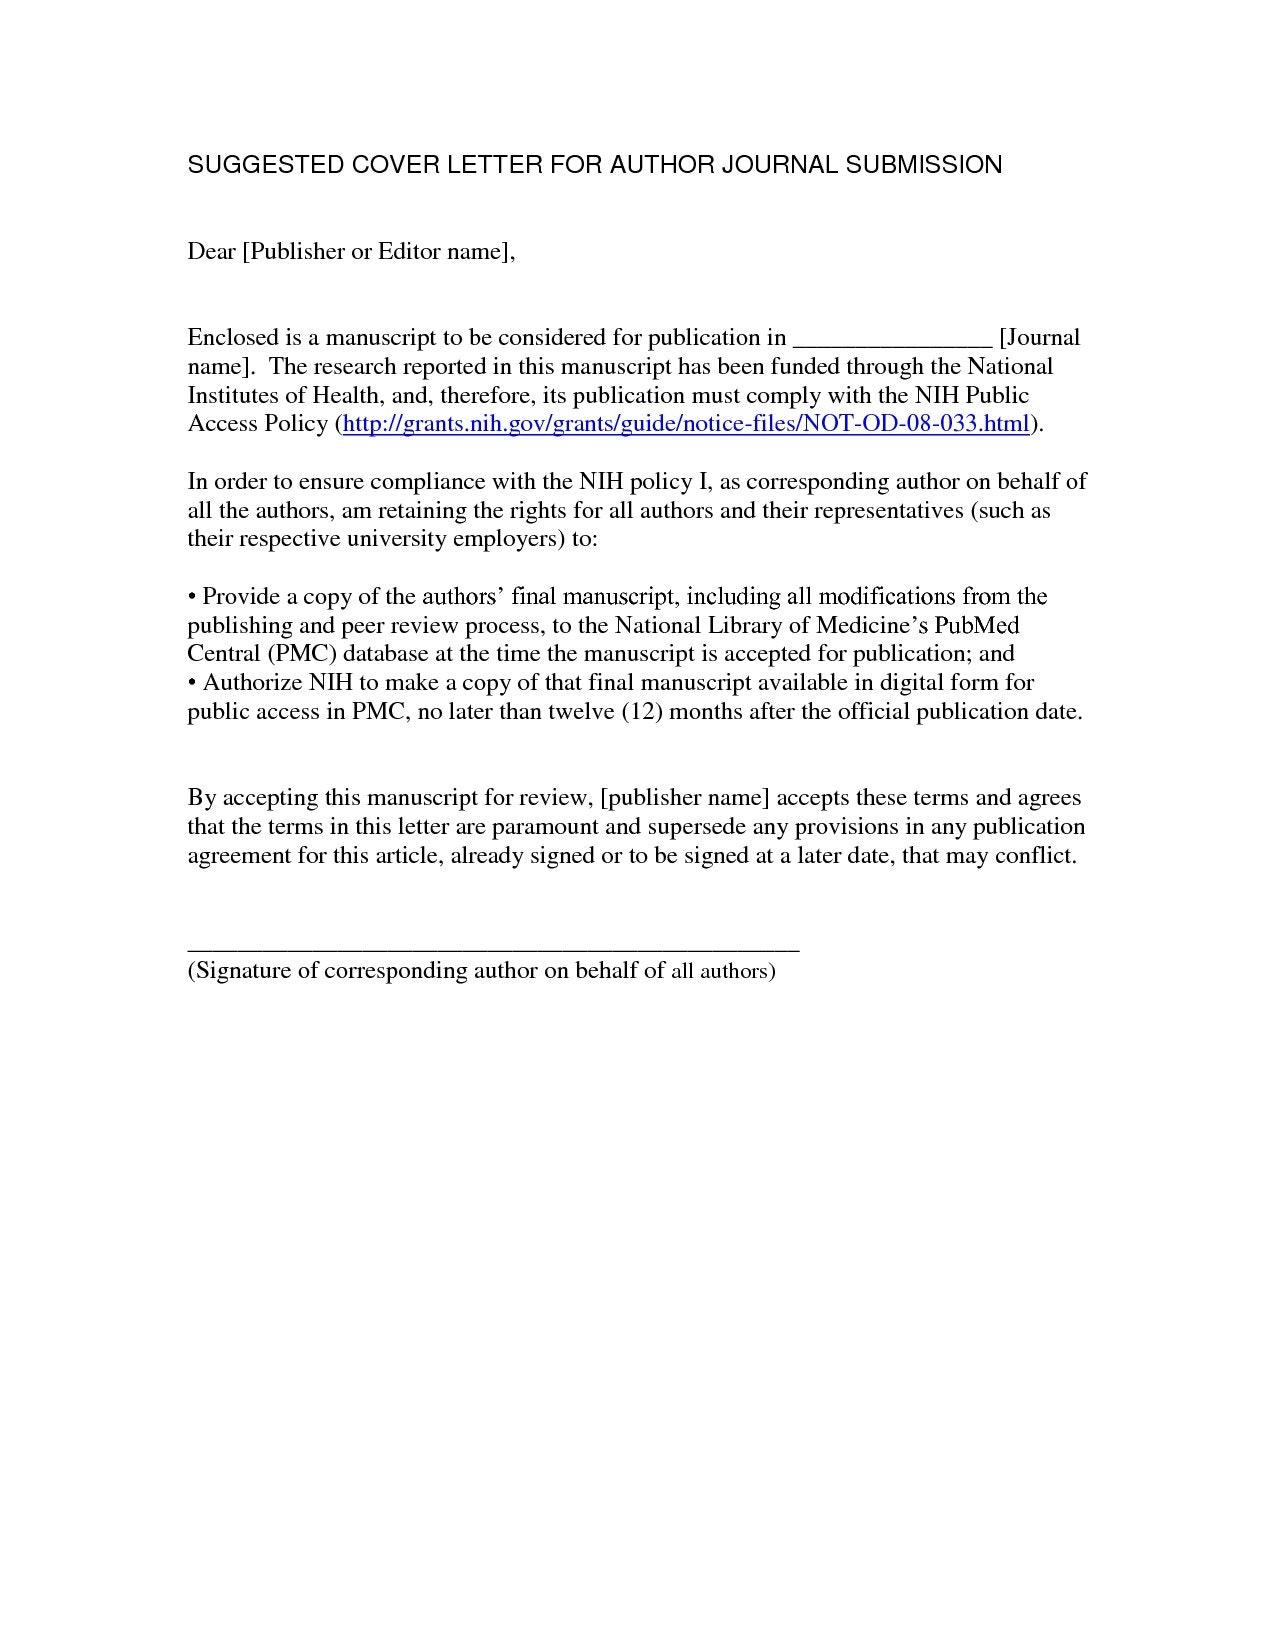 Mla Cover Letter Template - Mla Title Page Template 11 Mla Cover Letter for Resume Idea In